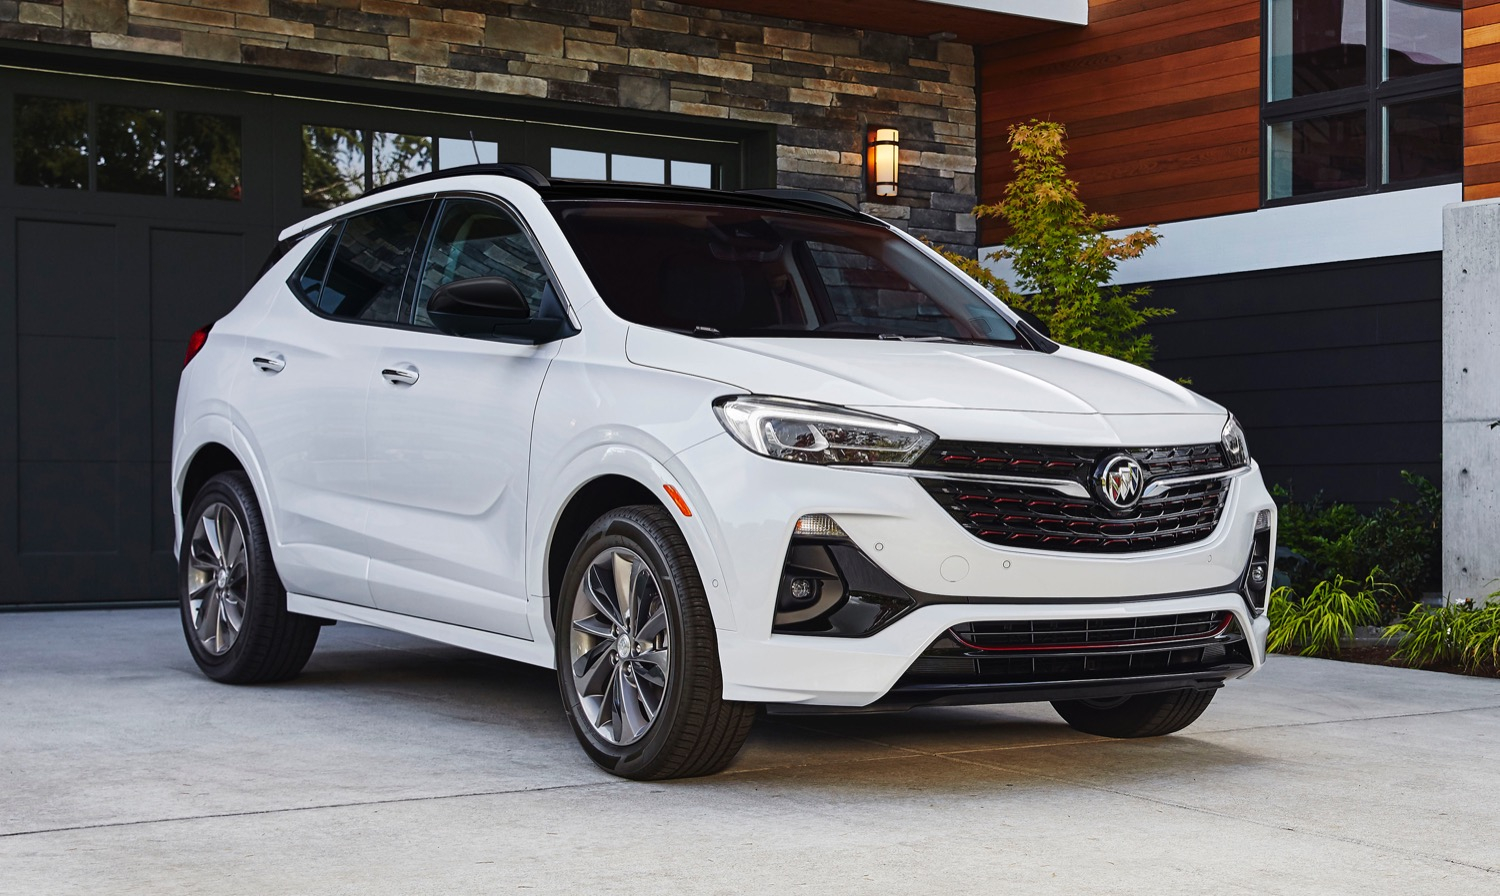 2020 Buick Encore Gx Fuel Economy Released | Gm Authority 2022 Buick Encore Gx Length, Price, Gas Mileage